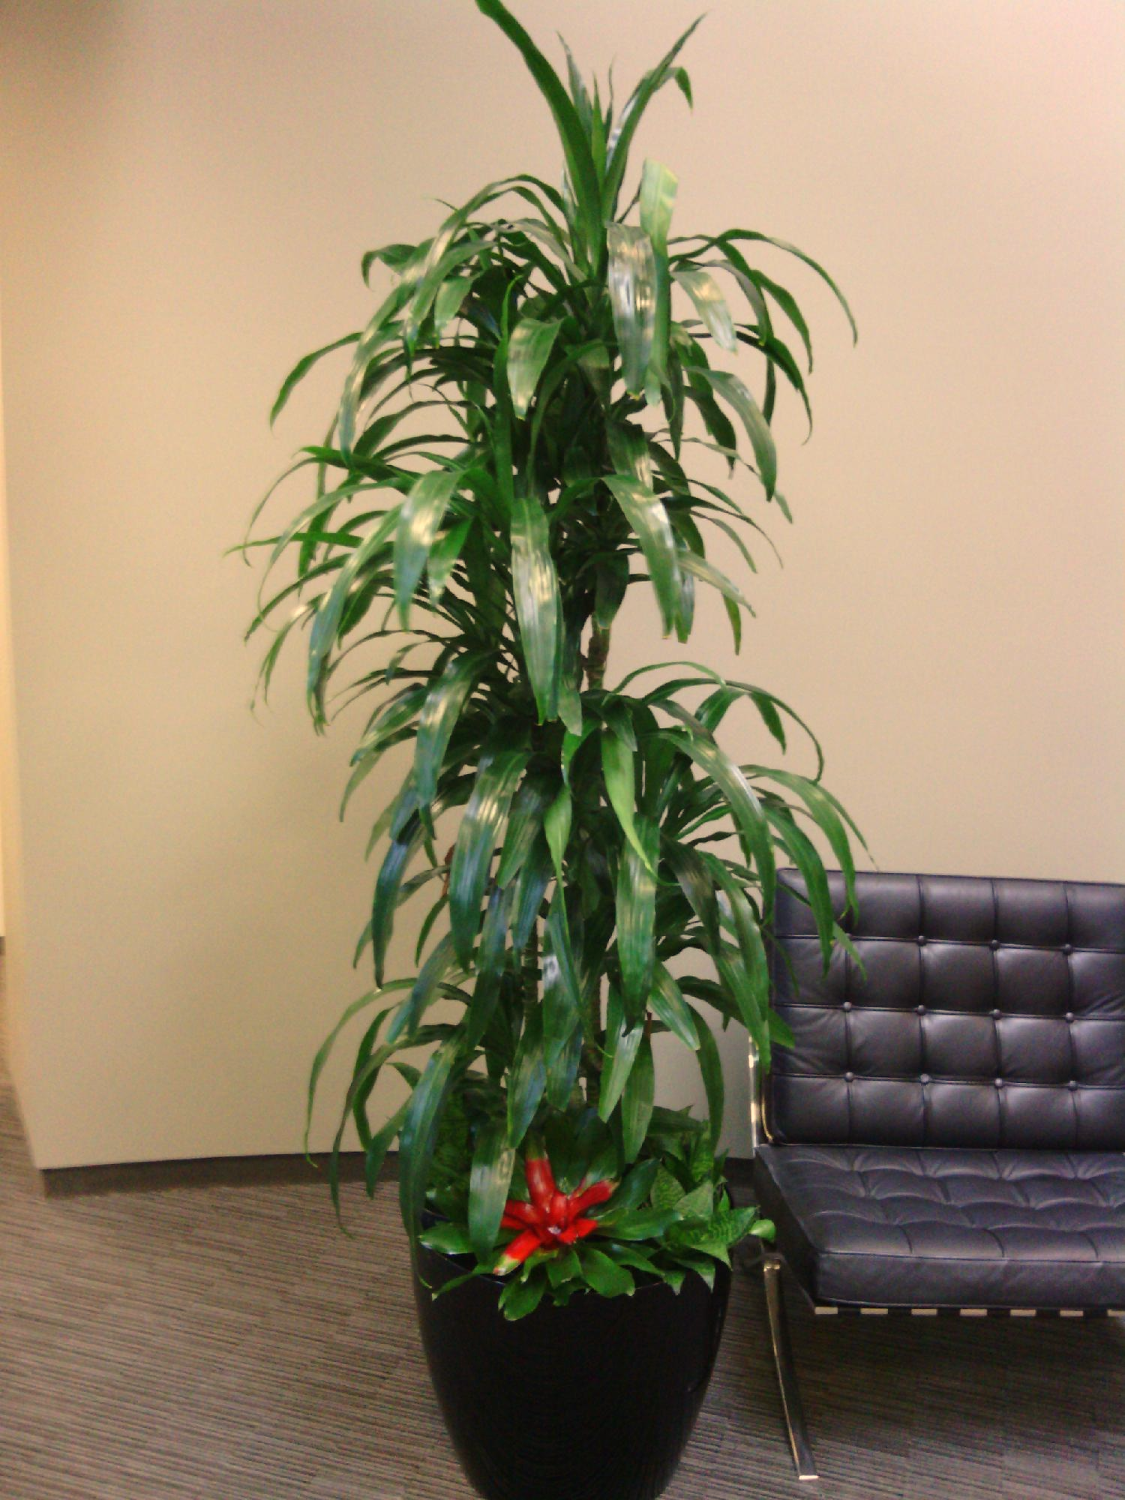 143ad3 - Tall office plants ...